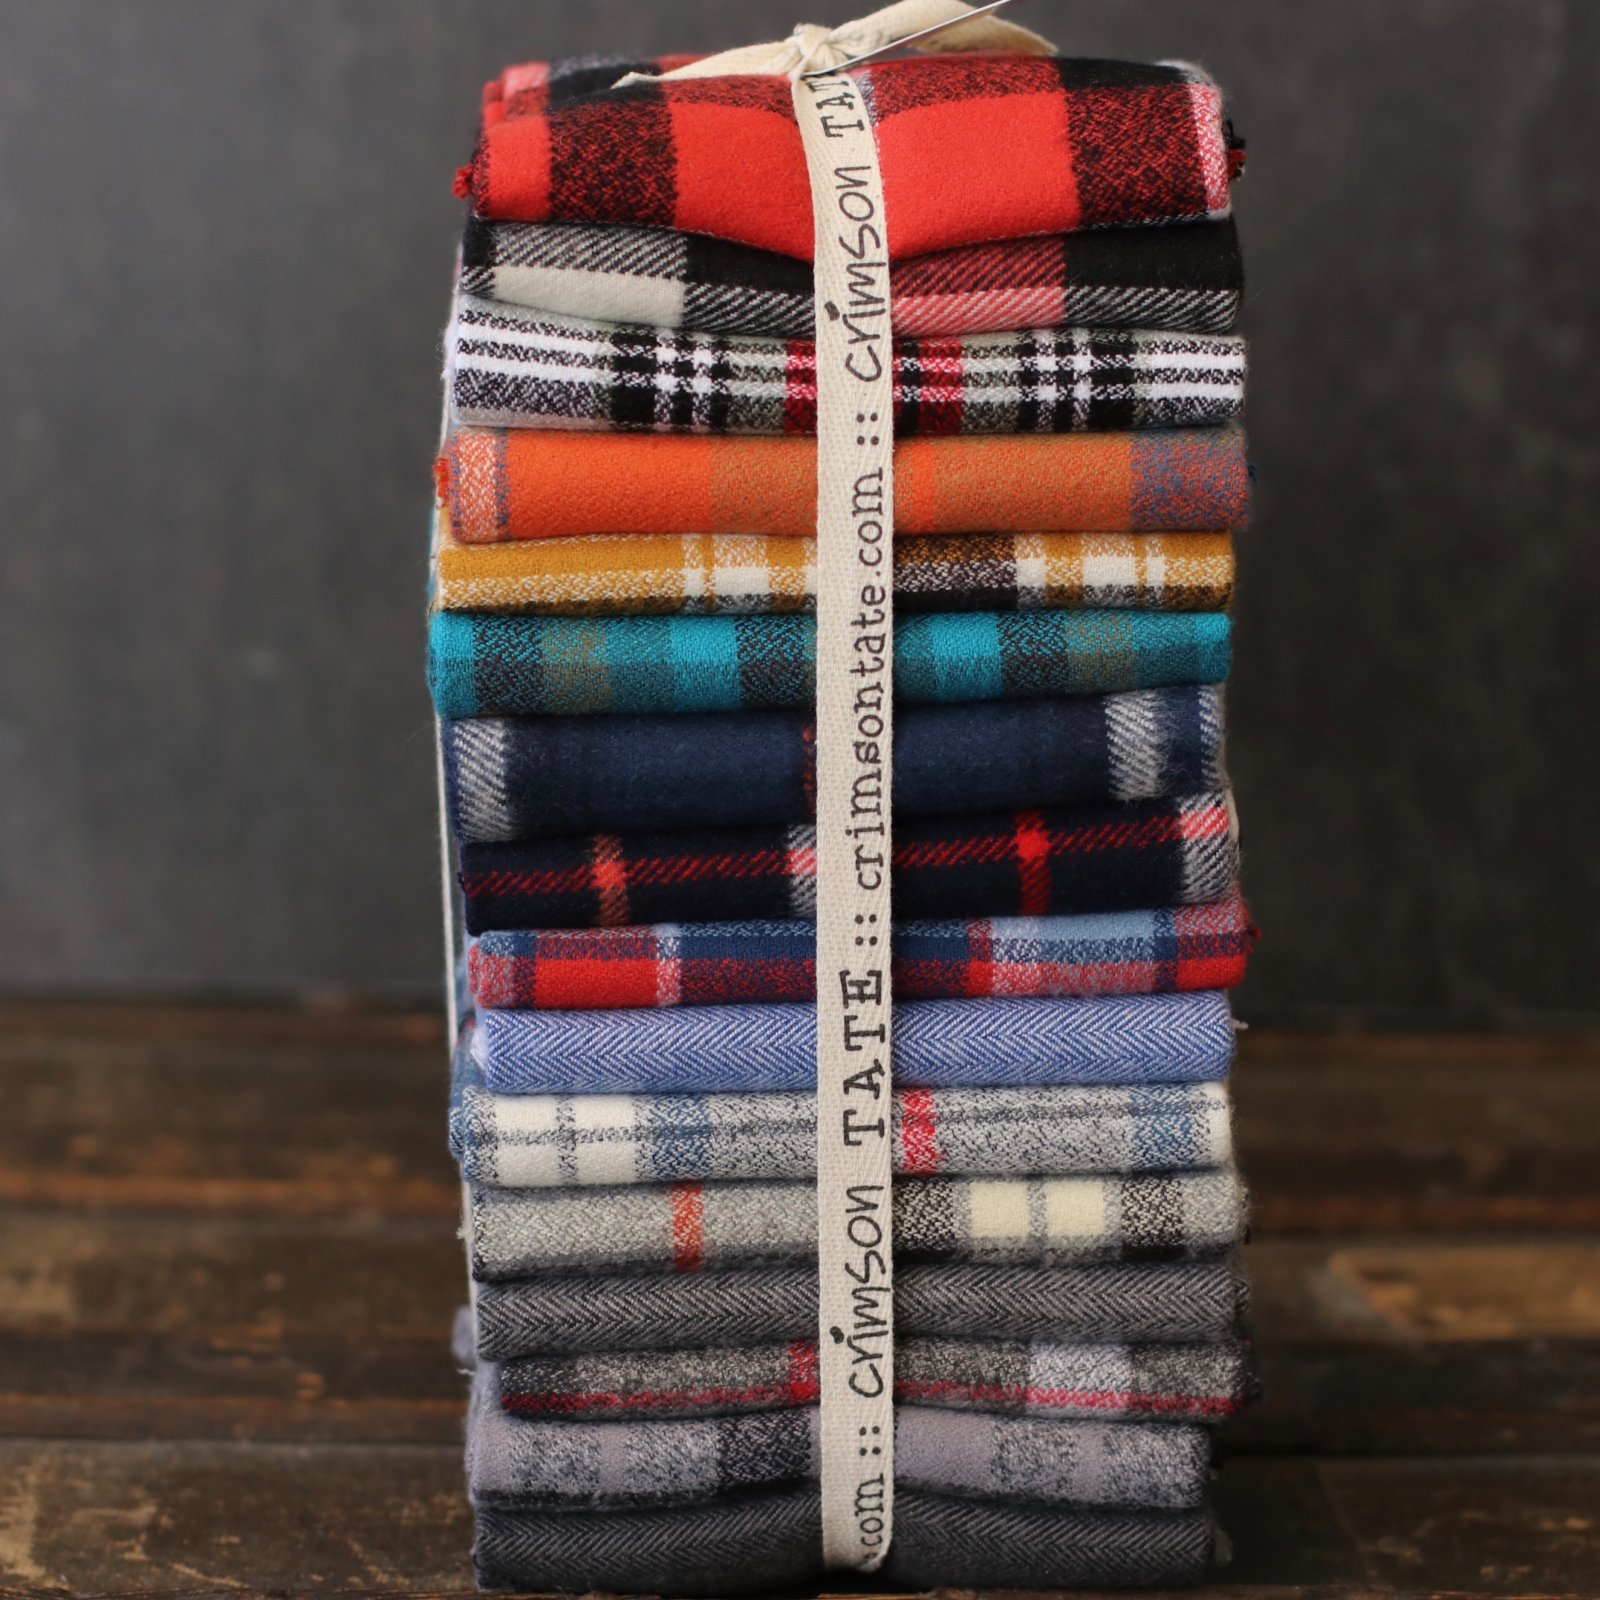 Robert Kaufman Flannel - 16 pc. Fat Quarter Bundle